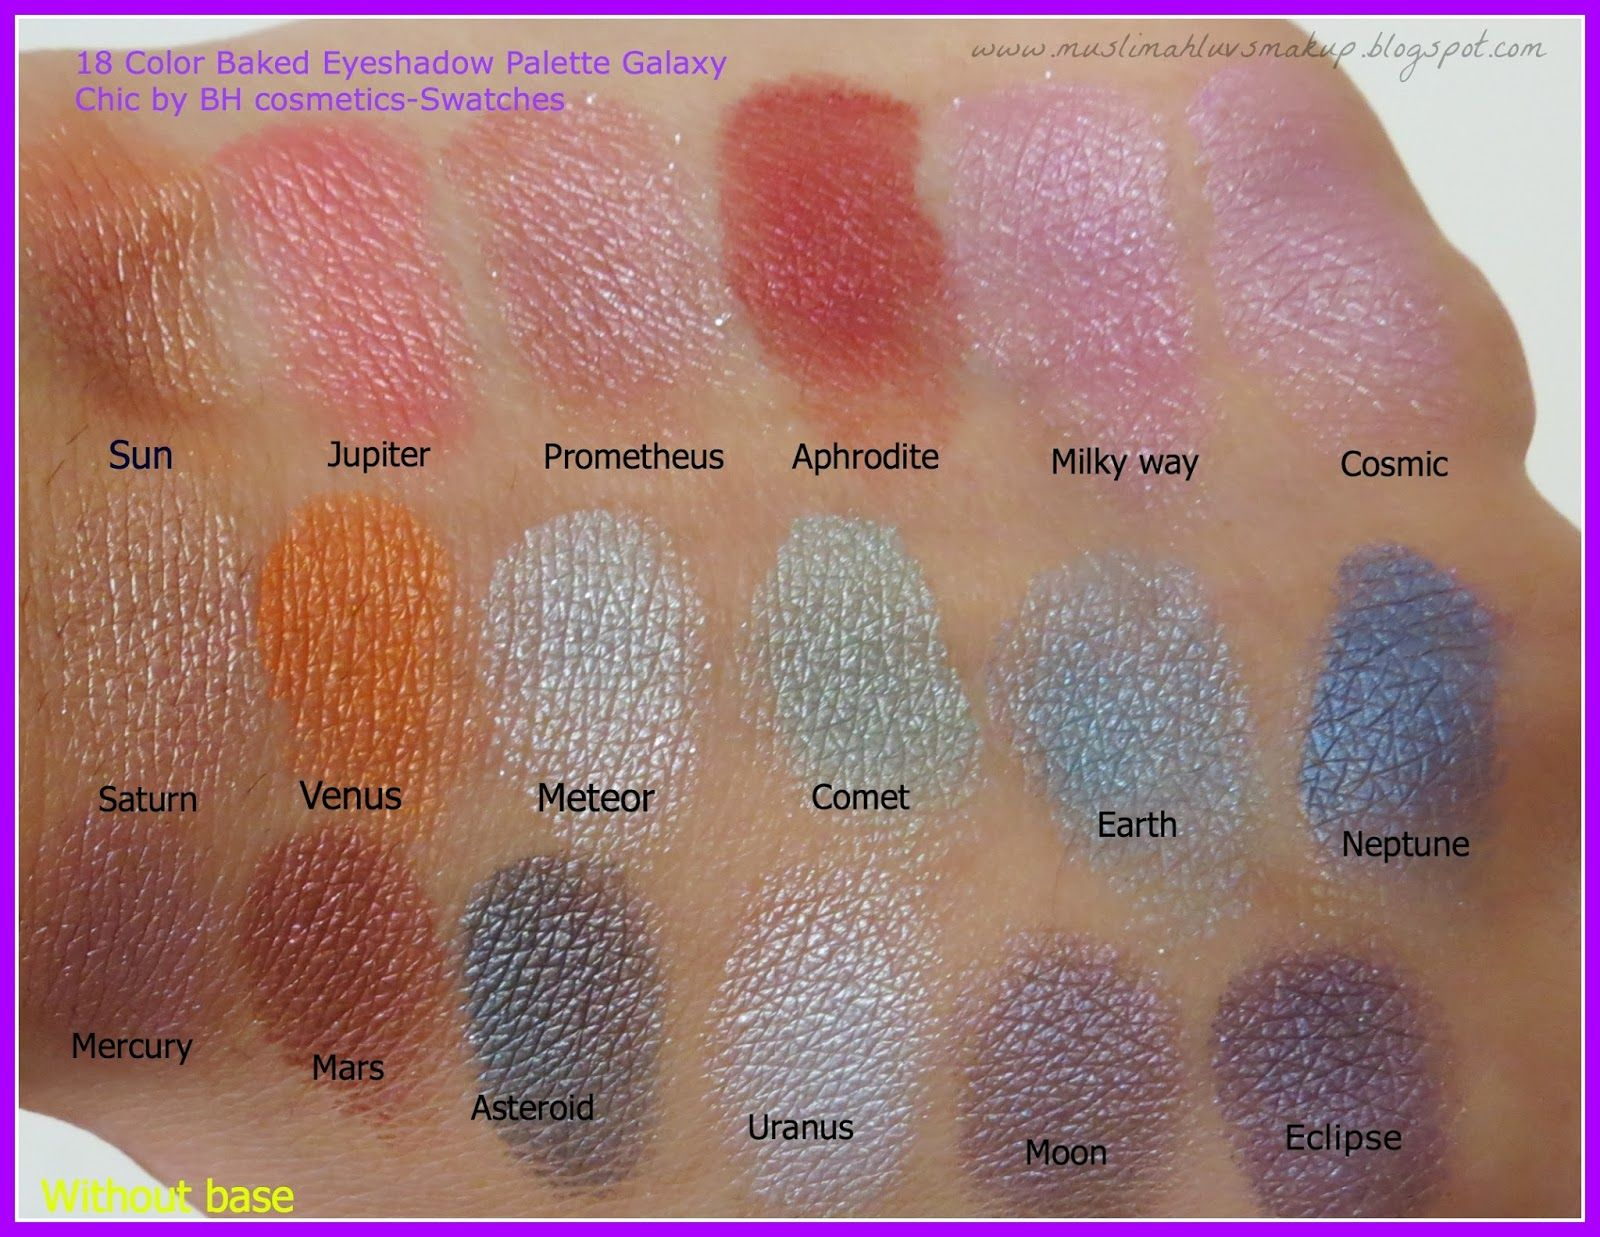 Galaxy Chic Baked Eyeshadow Palette by BH Cosmetics #11